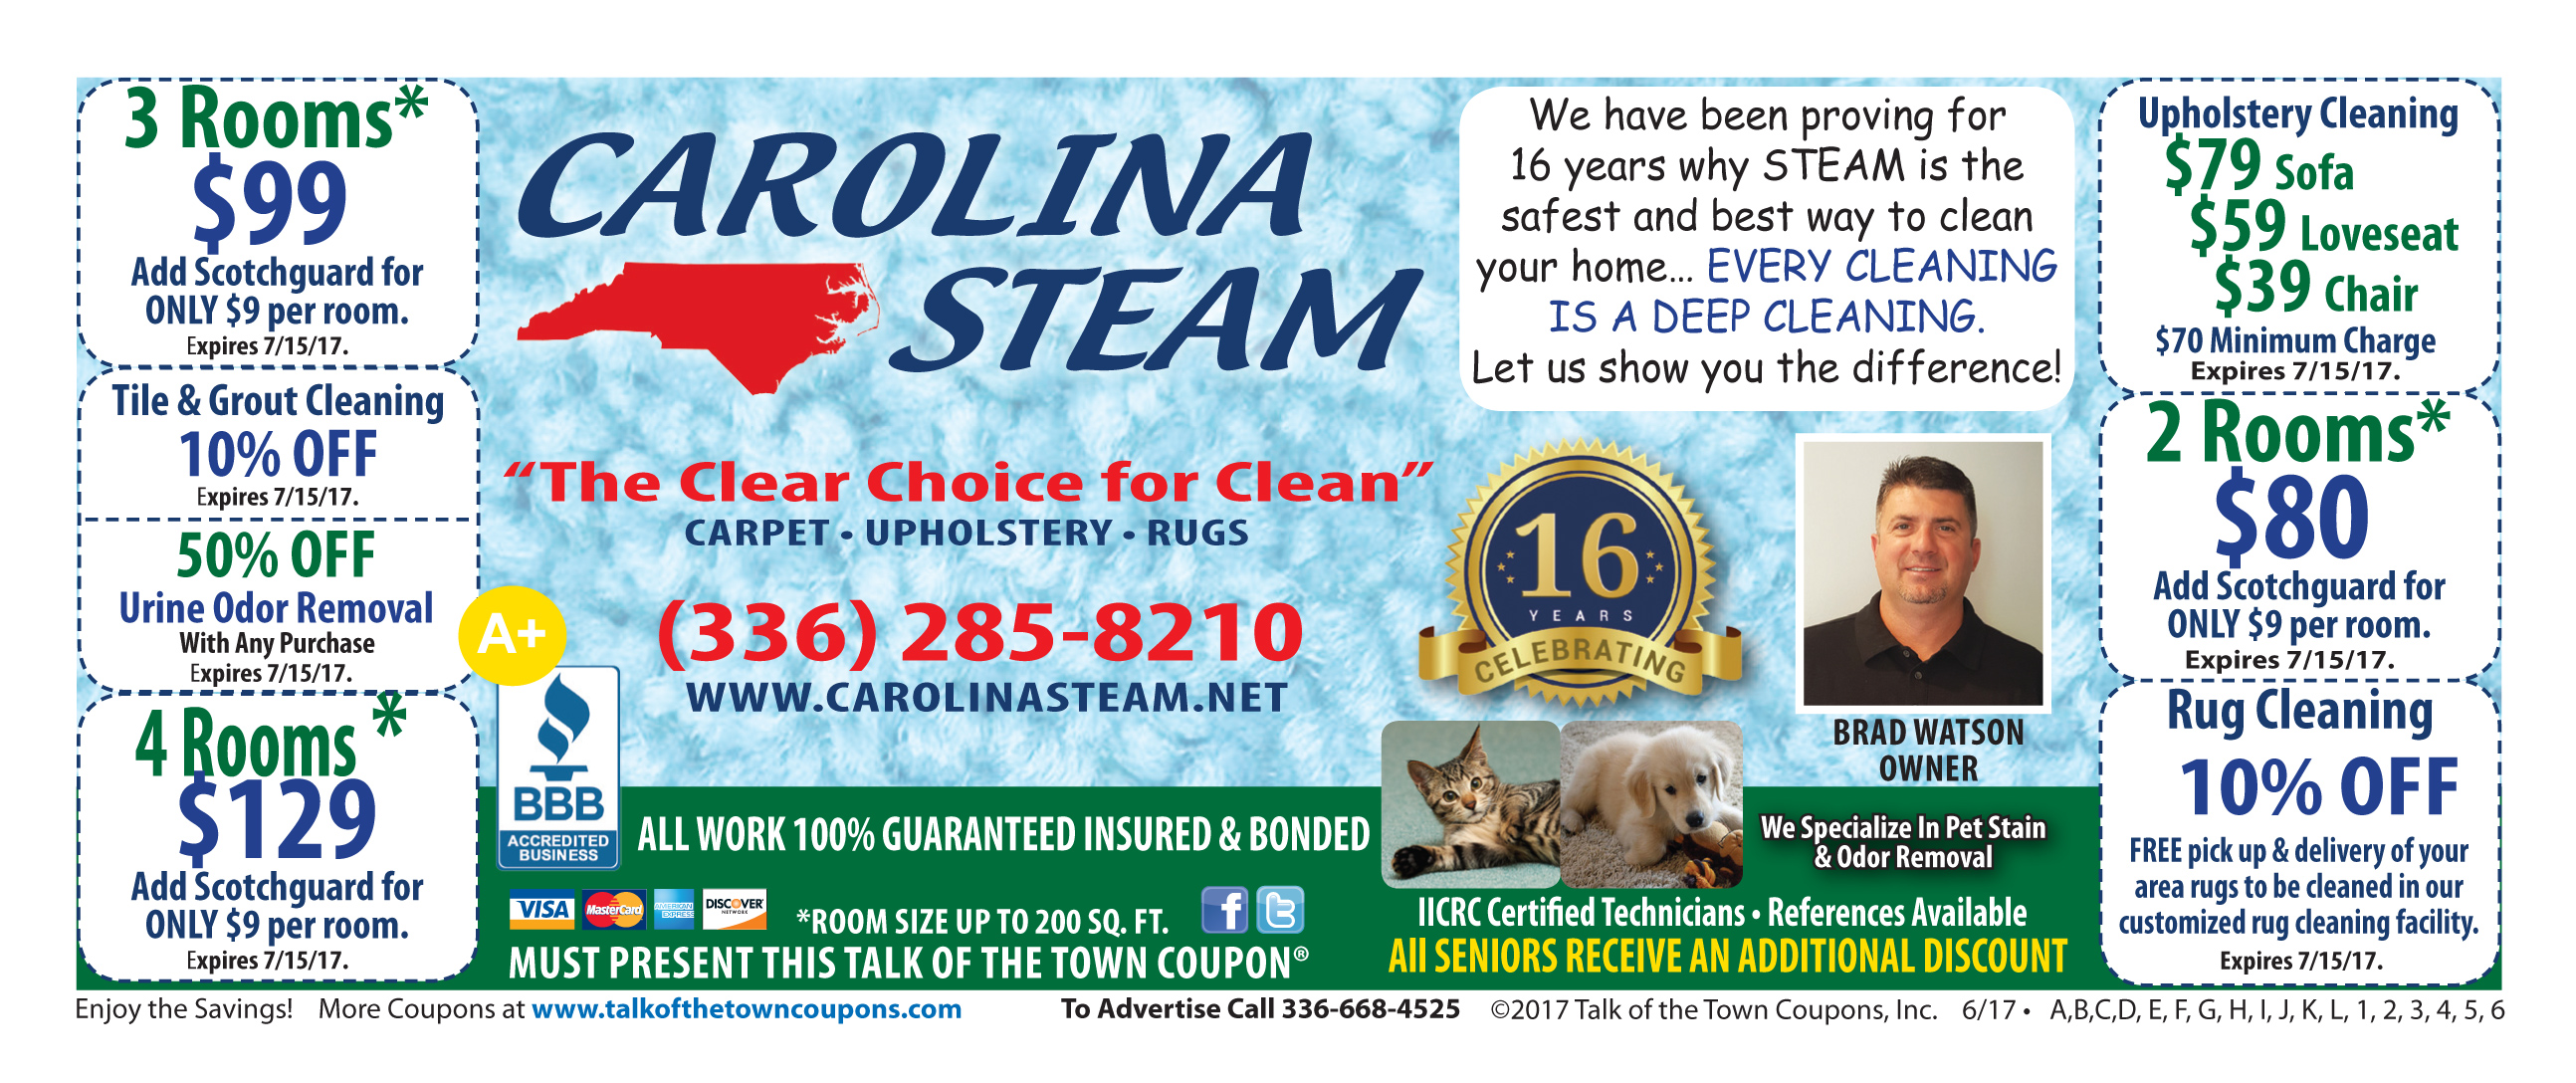 Carolina Steam Booklet Offer Coupon image